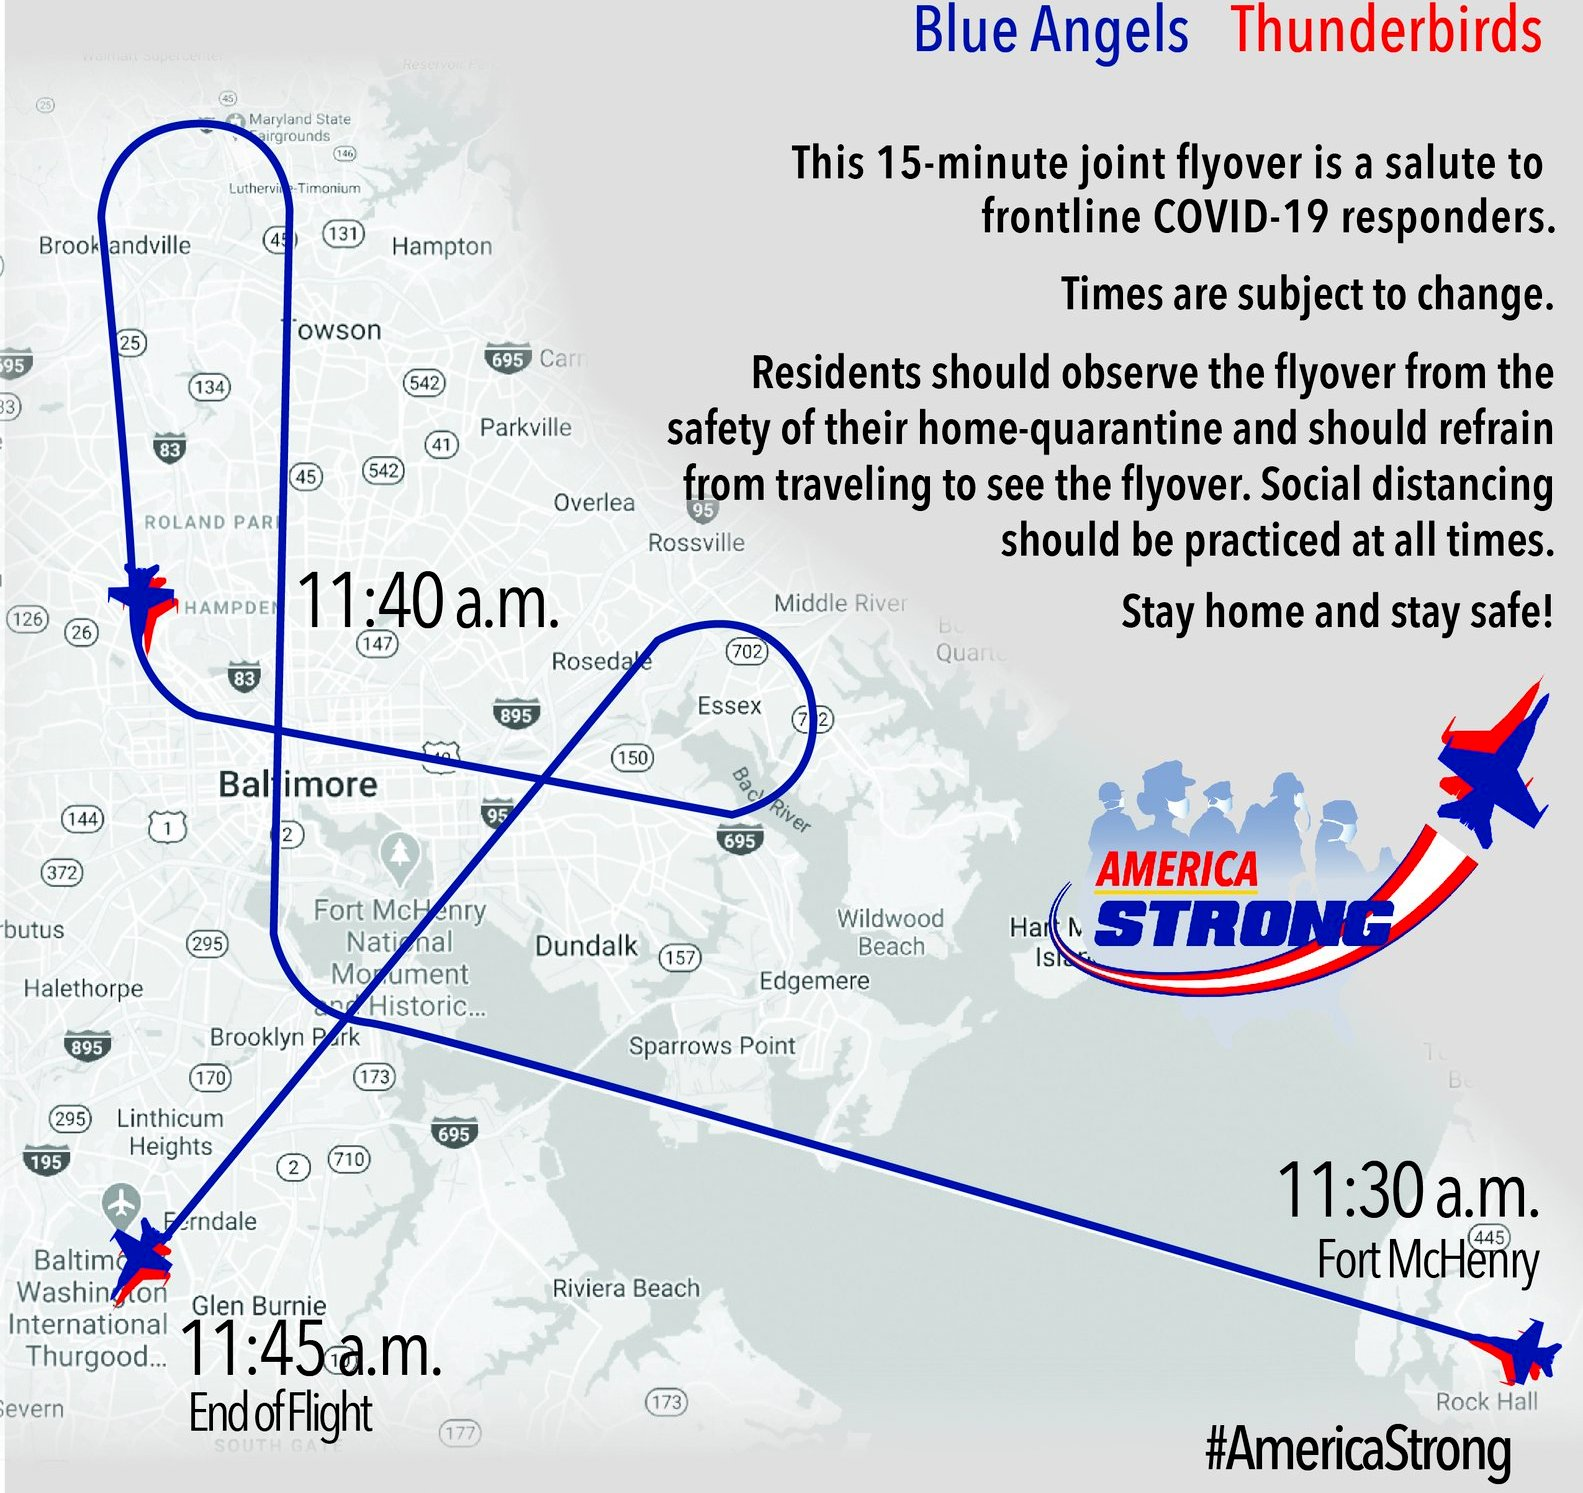 Path of the May 2 flyover of Baltimore by Navy and Air Force military jets. (@BlueAngels)